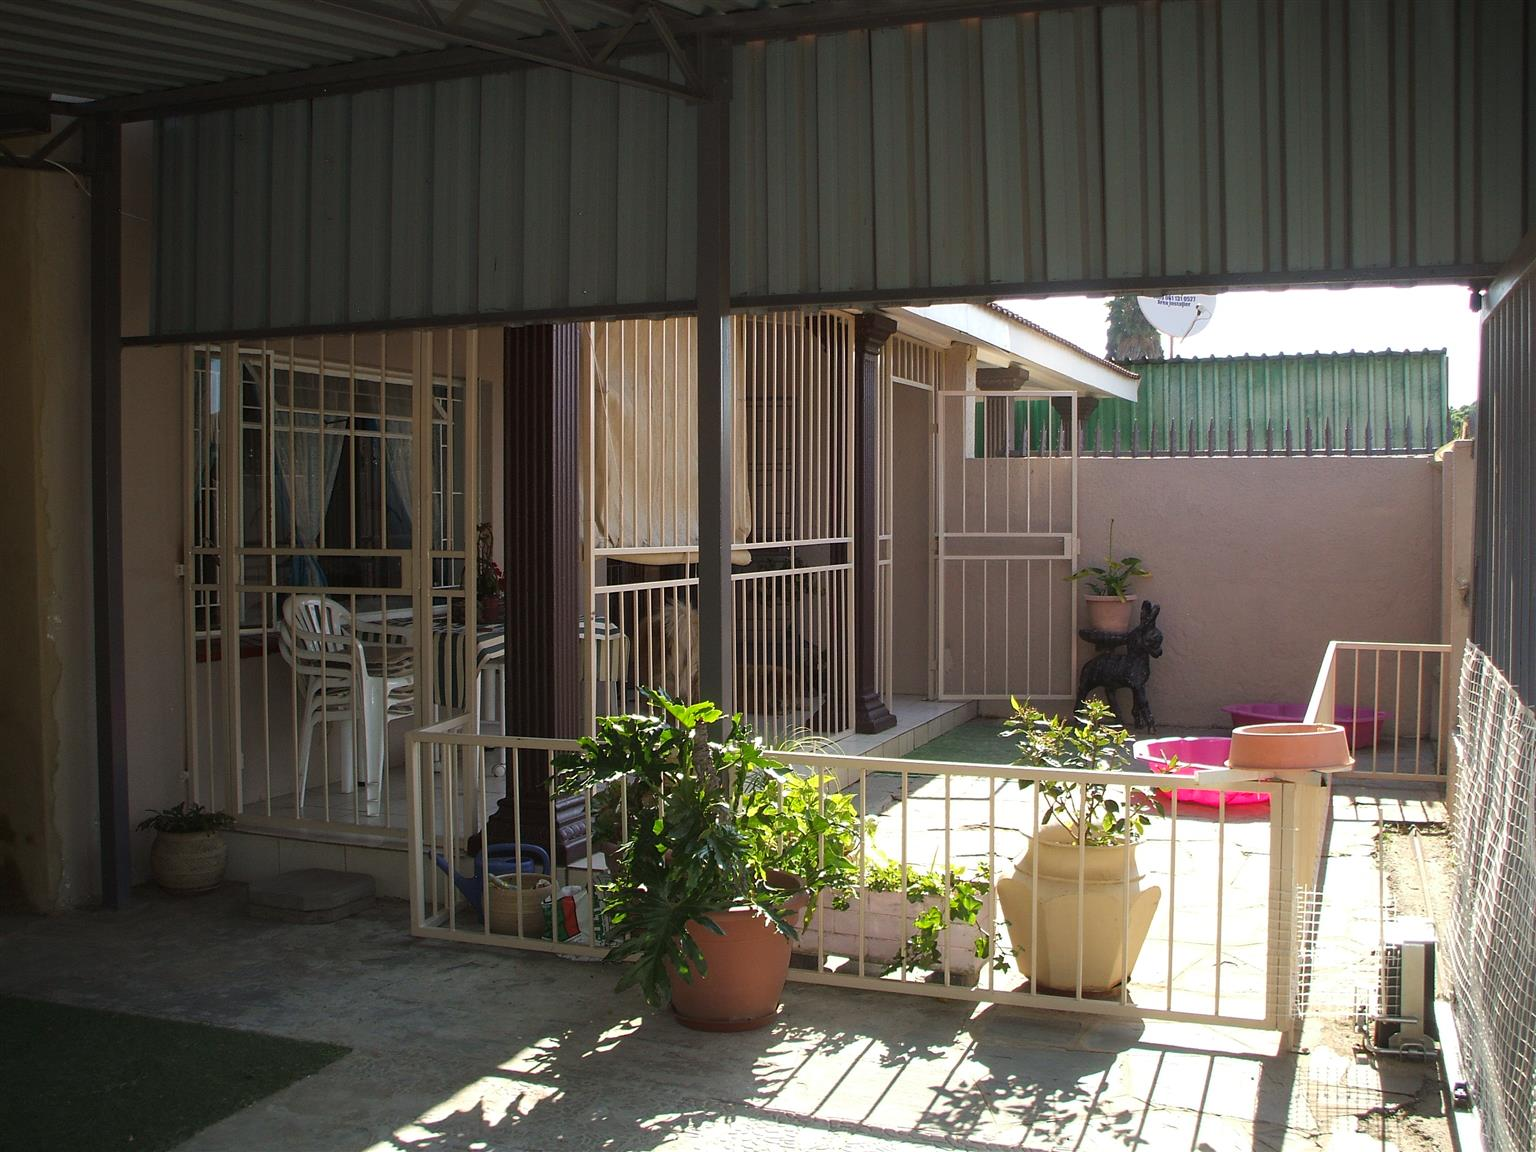 BOKSBURG HUGE, NEAT, MODERNIZED 2 BEDROOM HOUSE WITH ADDITIONAL EXTRAS